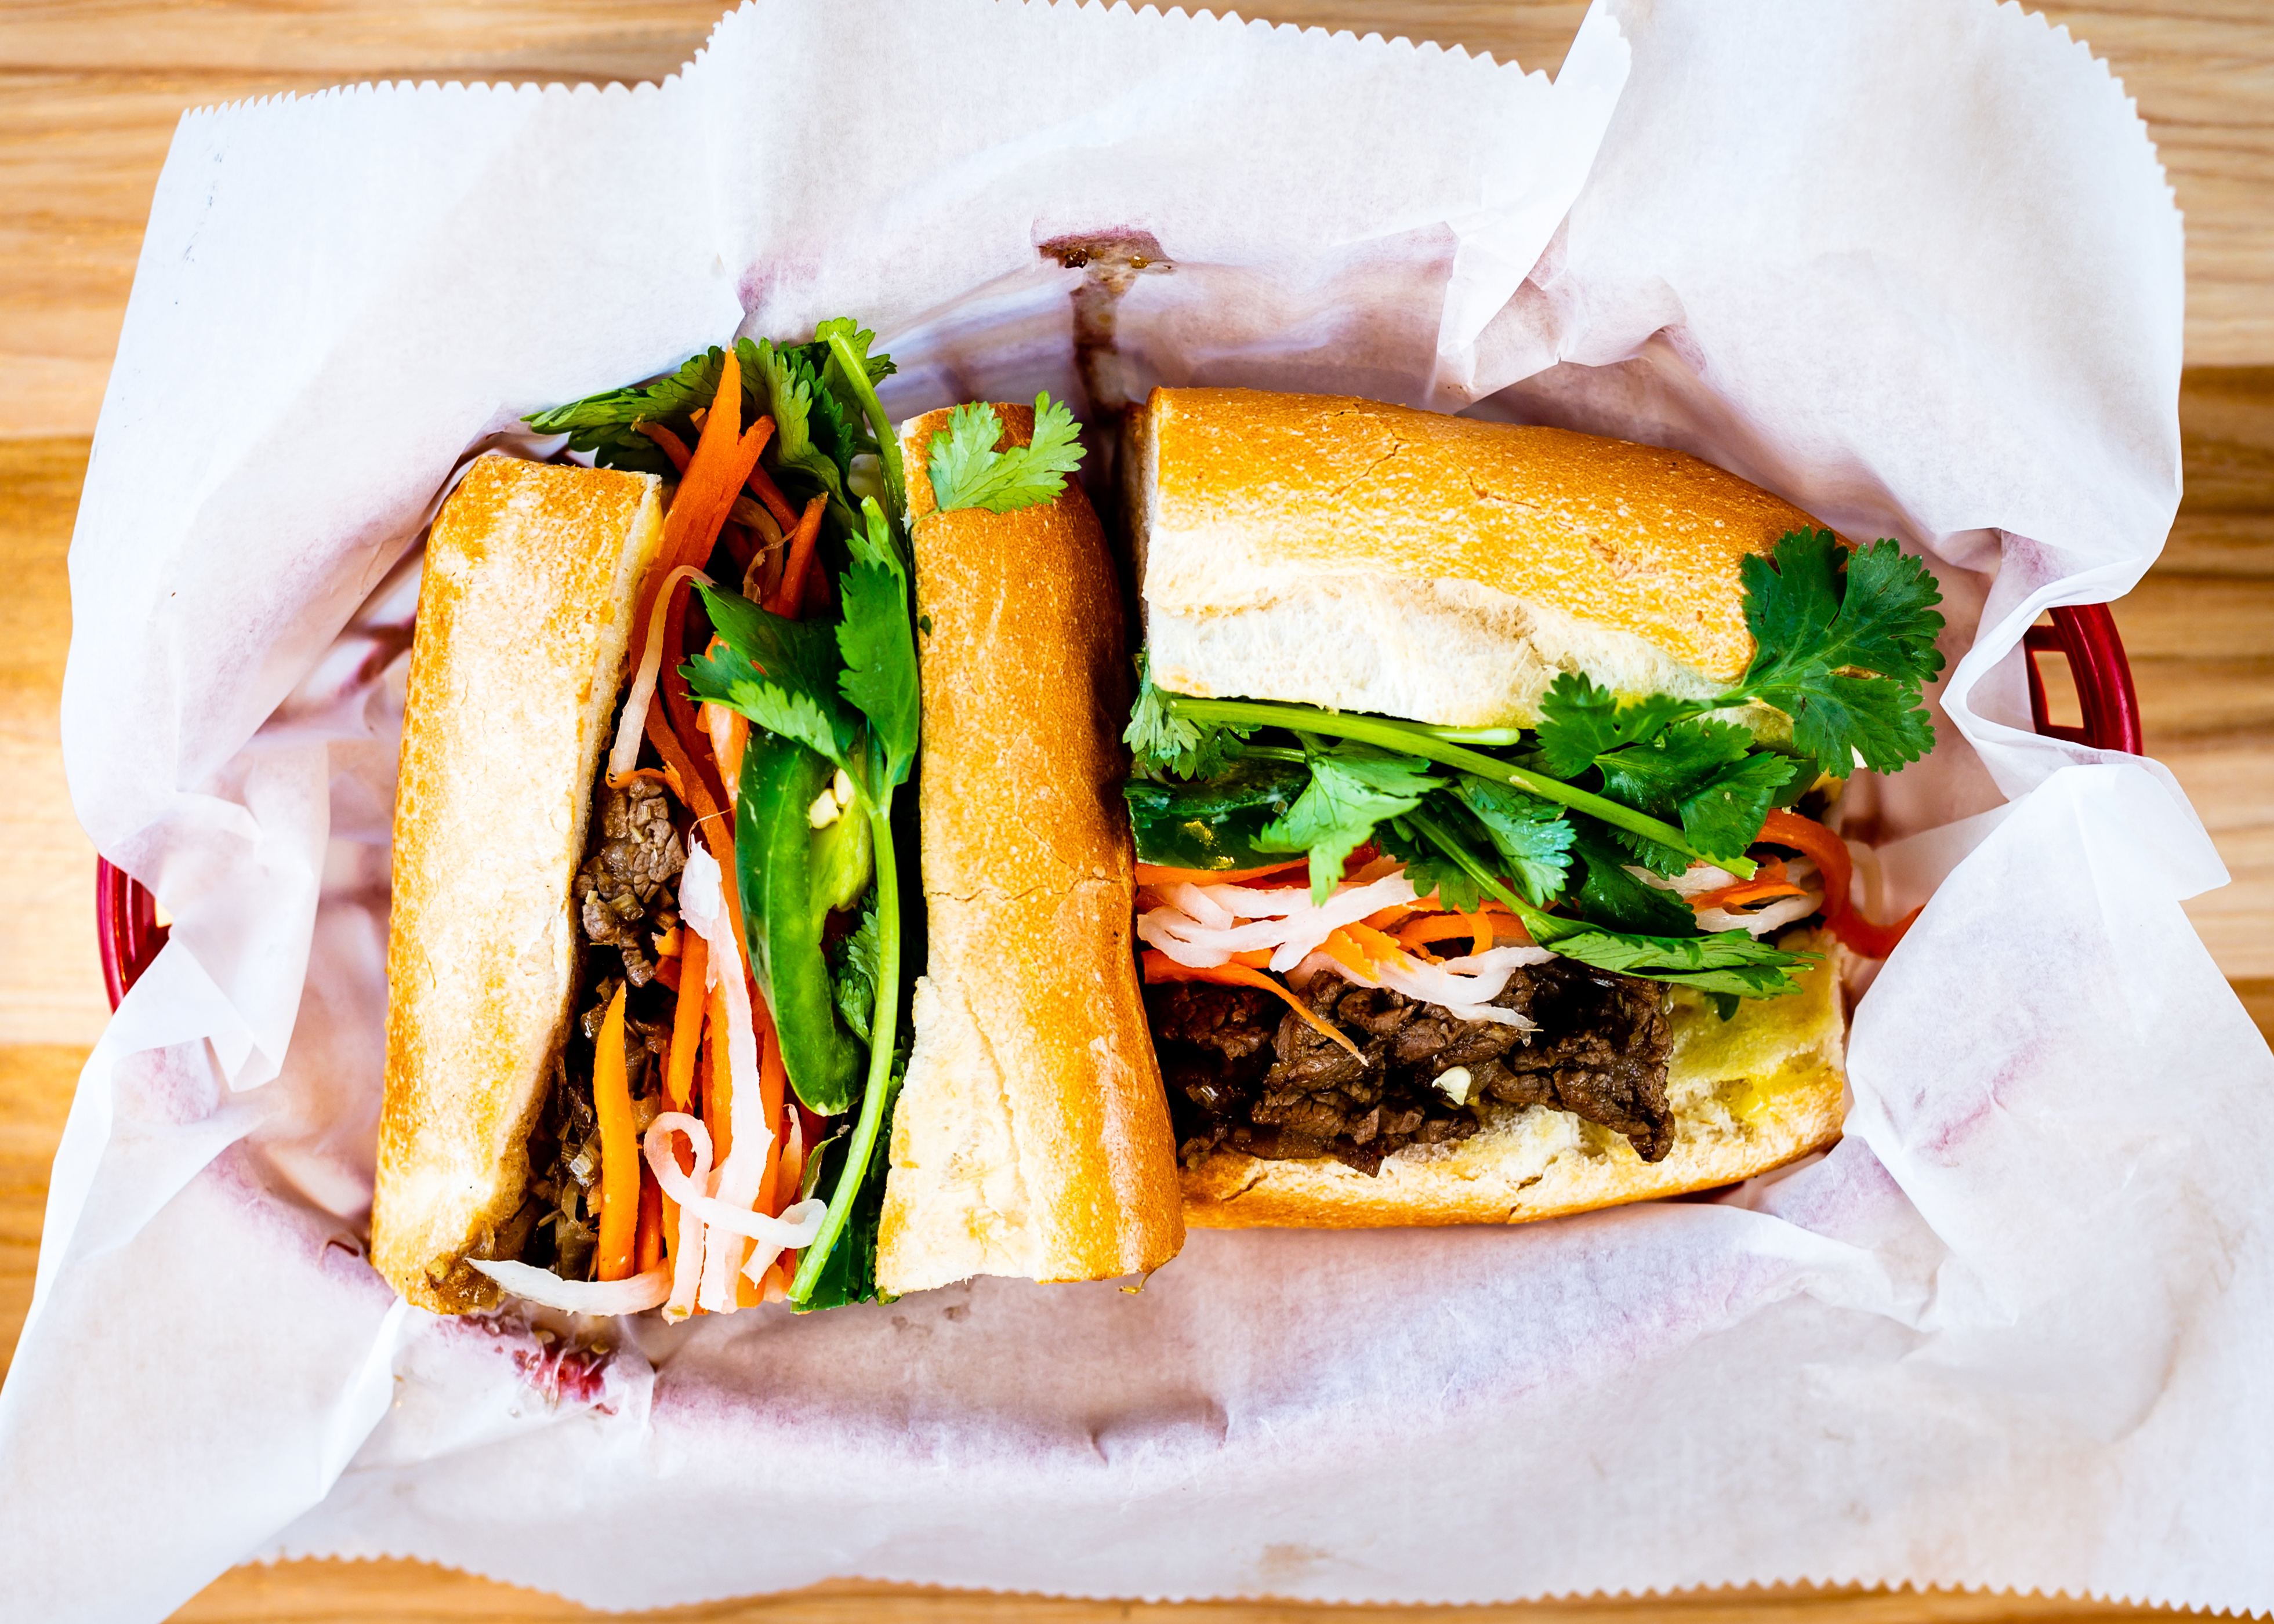 Two halves of a Lemongrass beef banh mi with herbs and pickled vegetables from Vietvana in Midtown Atlanta